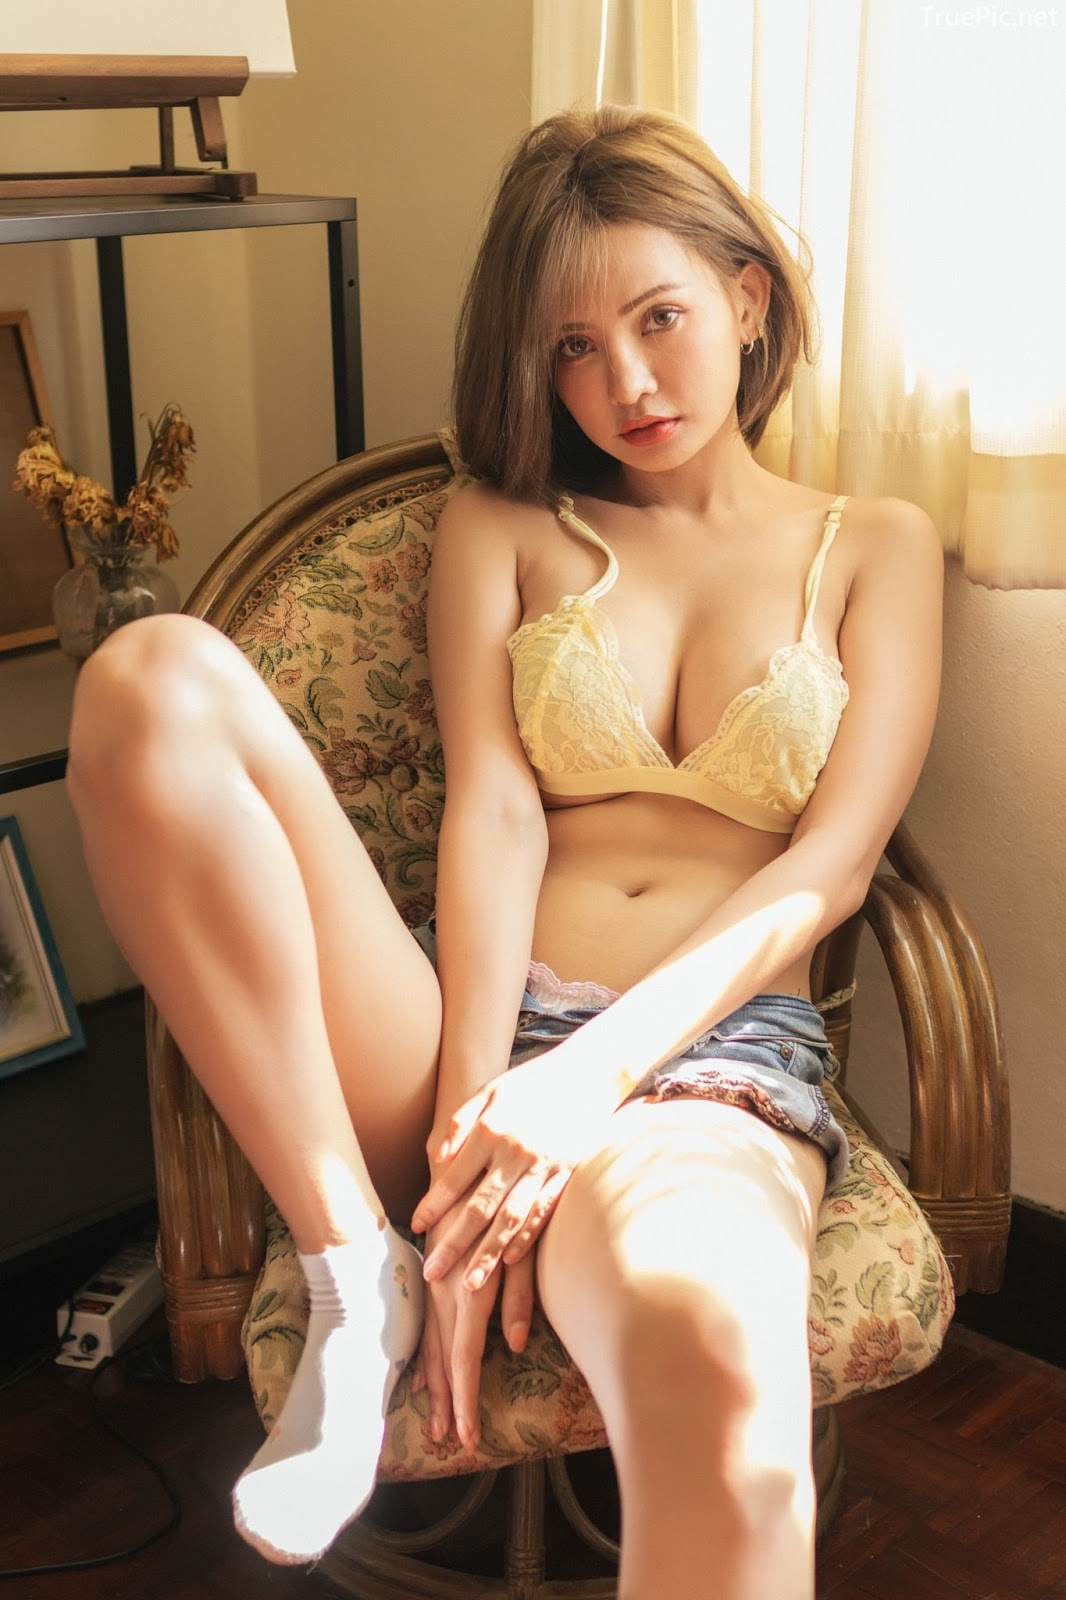 Sutasinee Siriruke Thailand sexy model with photo album Stay with me - Picture 2